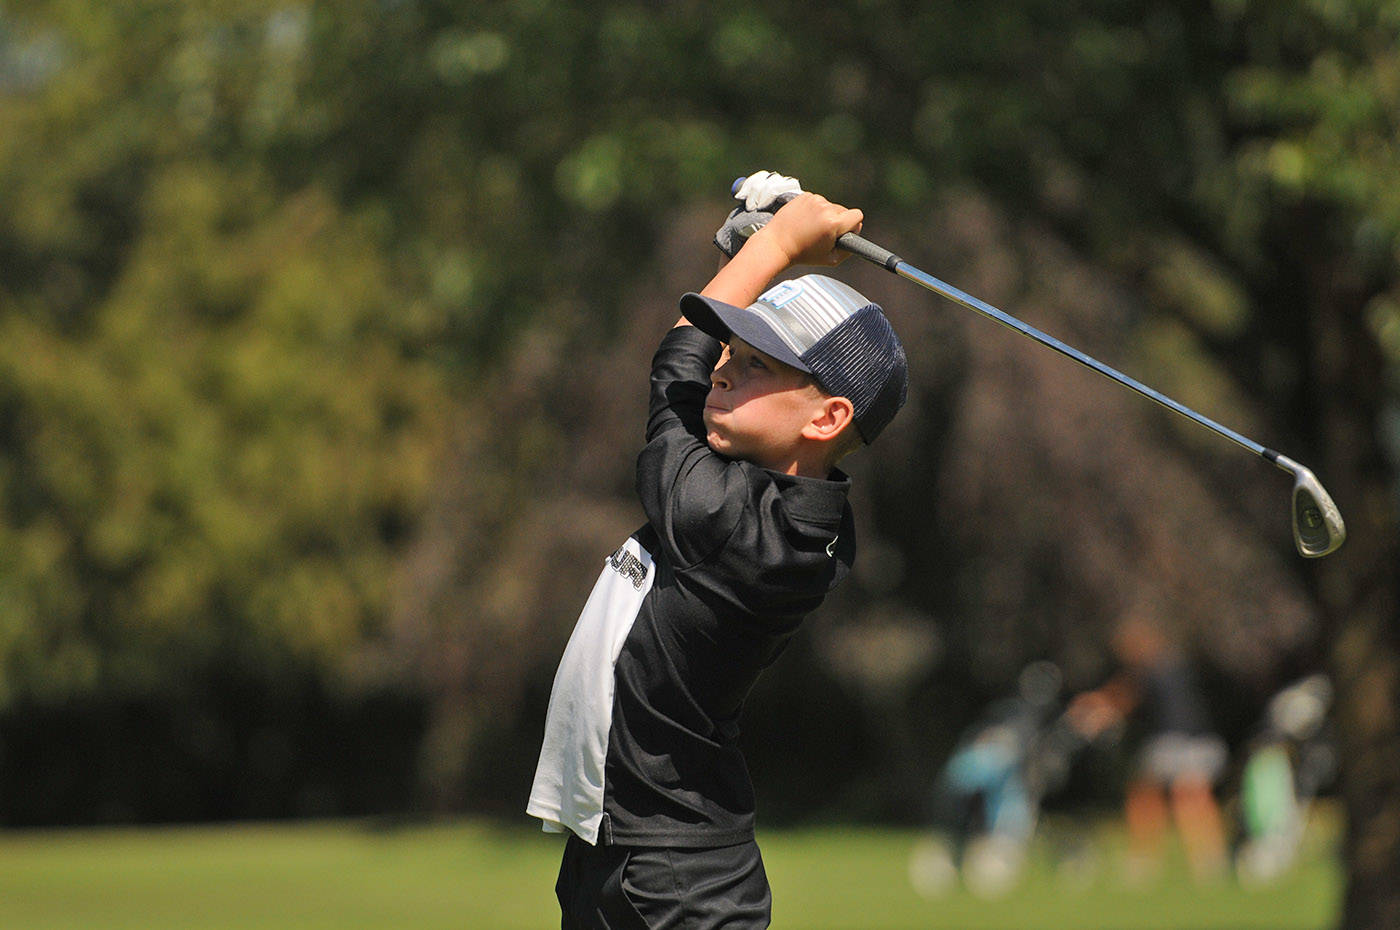 Chilliwack's Owen Hopfner tees off from the fourth hole at Chilliwack Golf Club during the final round of the 2021 Optimist Fred Wellsby Junior Divot golf tournament on Thursday, July 15, 2021. (Jenna Hauck/ Chilliwack Progress)